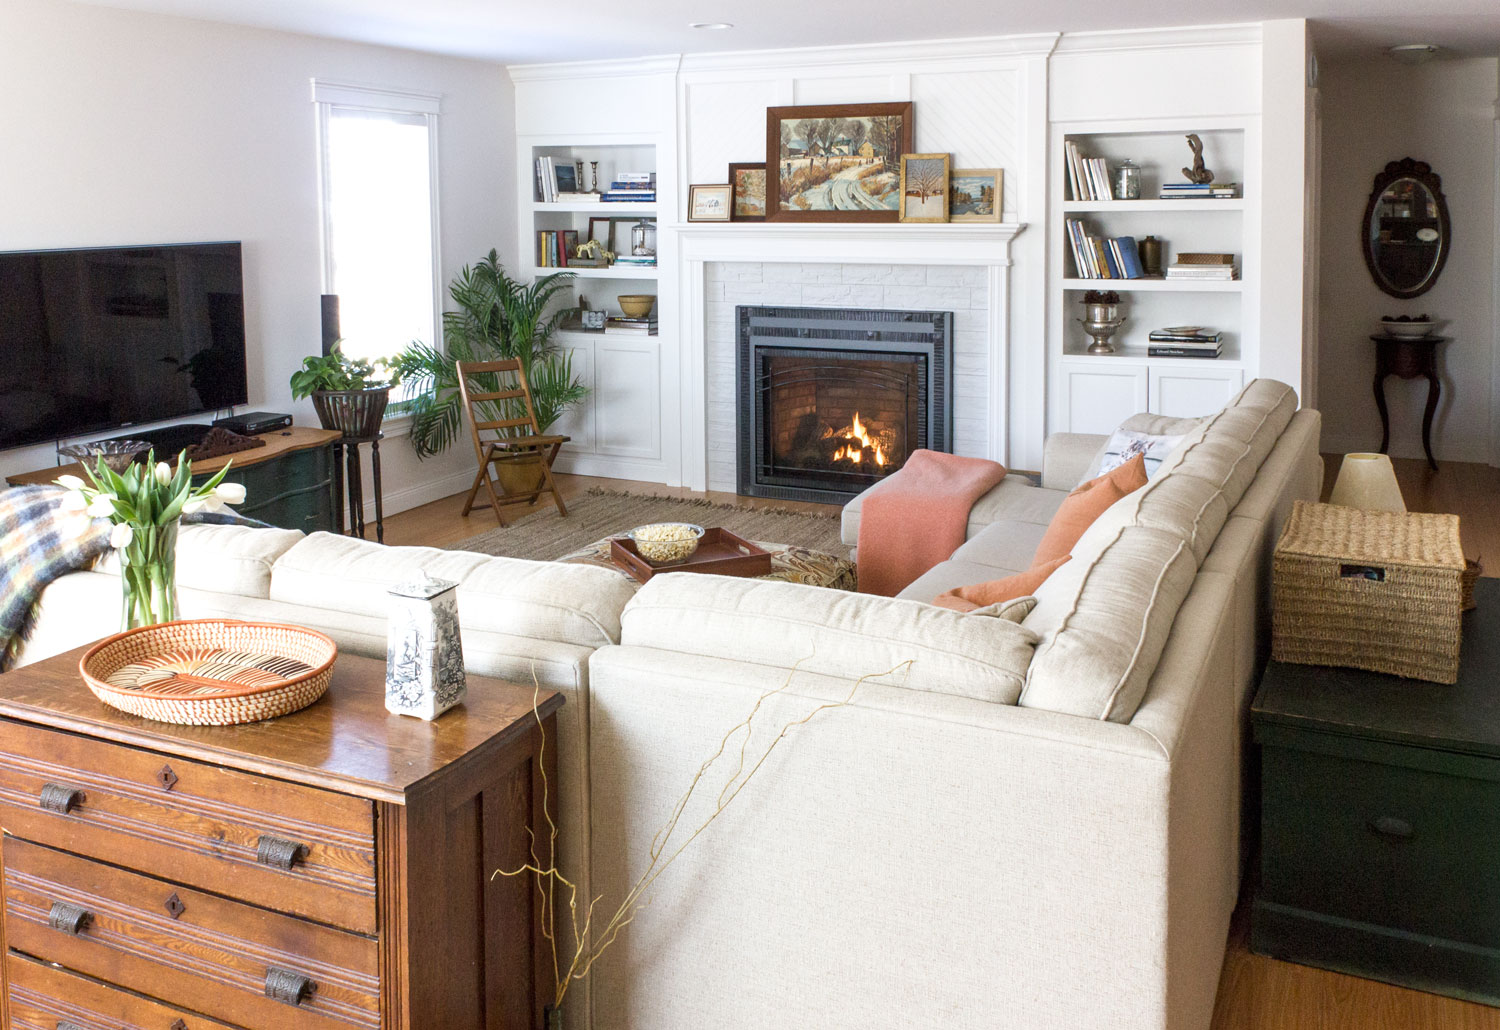 bright-basment-family-room-with-fireplace.jpg